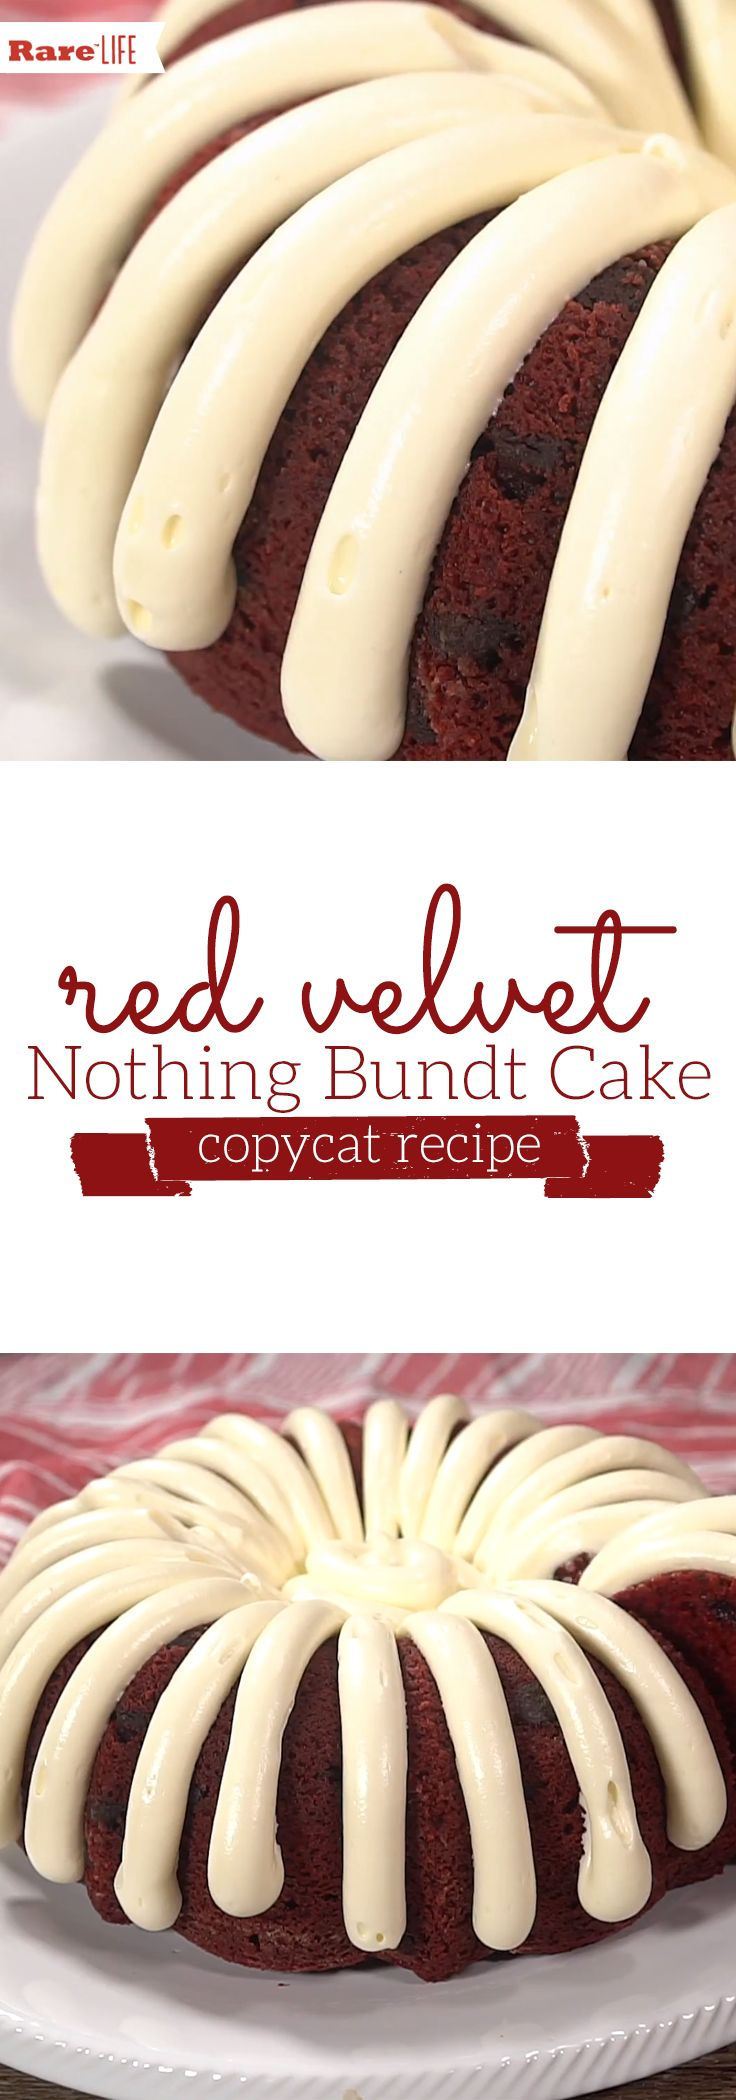 If you're lucky enough to have a Nothing Bundt Cakes location in your hometown, you're probably familiar with how delicious their cakes are. Lucky for you, we've found a copycat recipe that looks just as good.